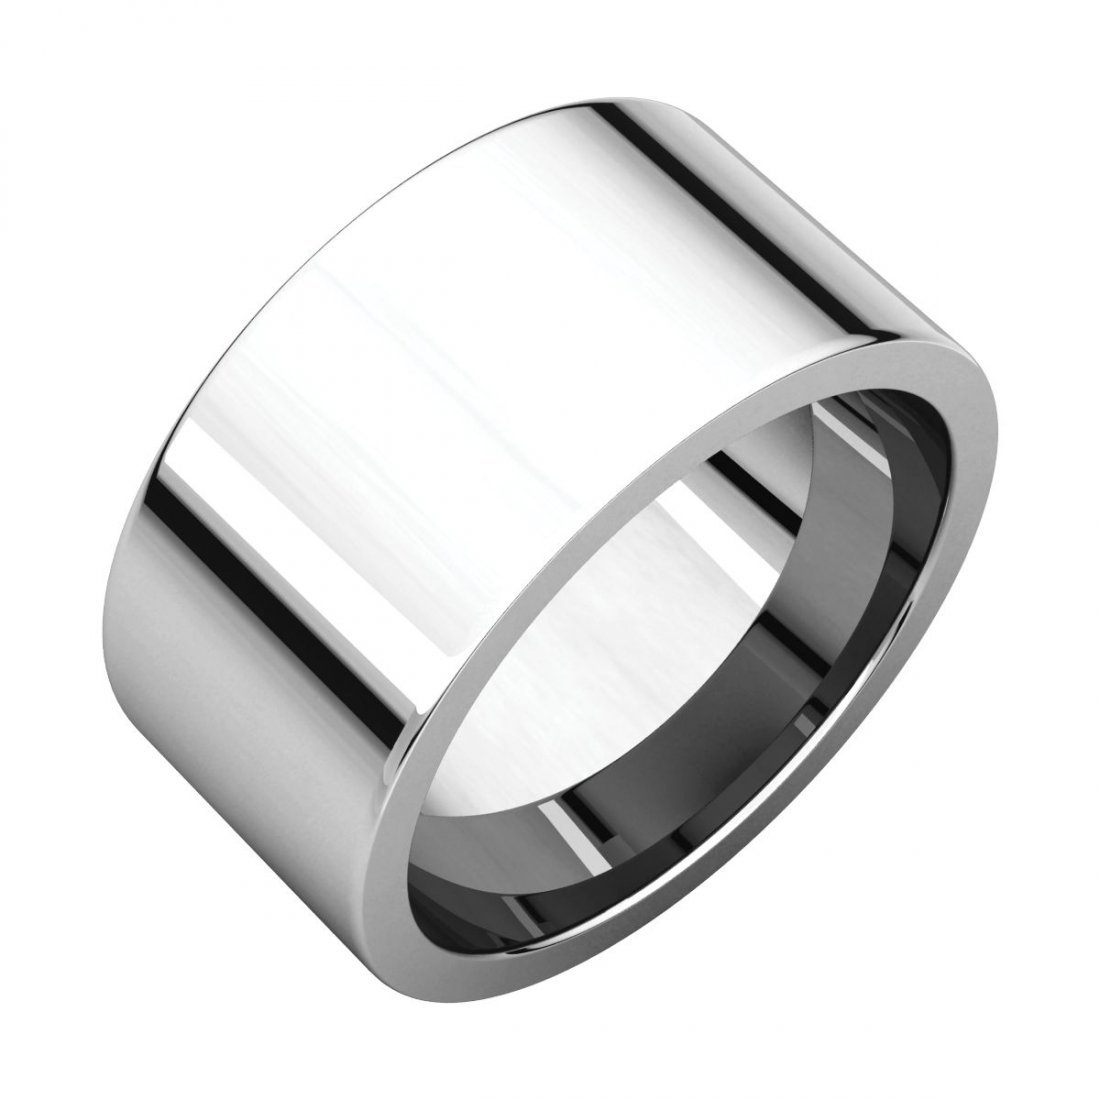 Ring - 14k White Gold 10mm Flat Comfort Fit Band